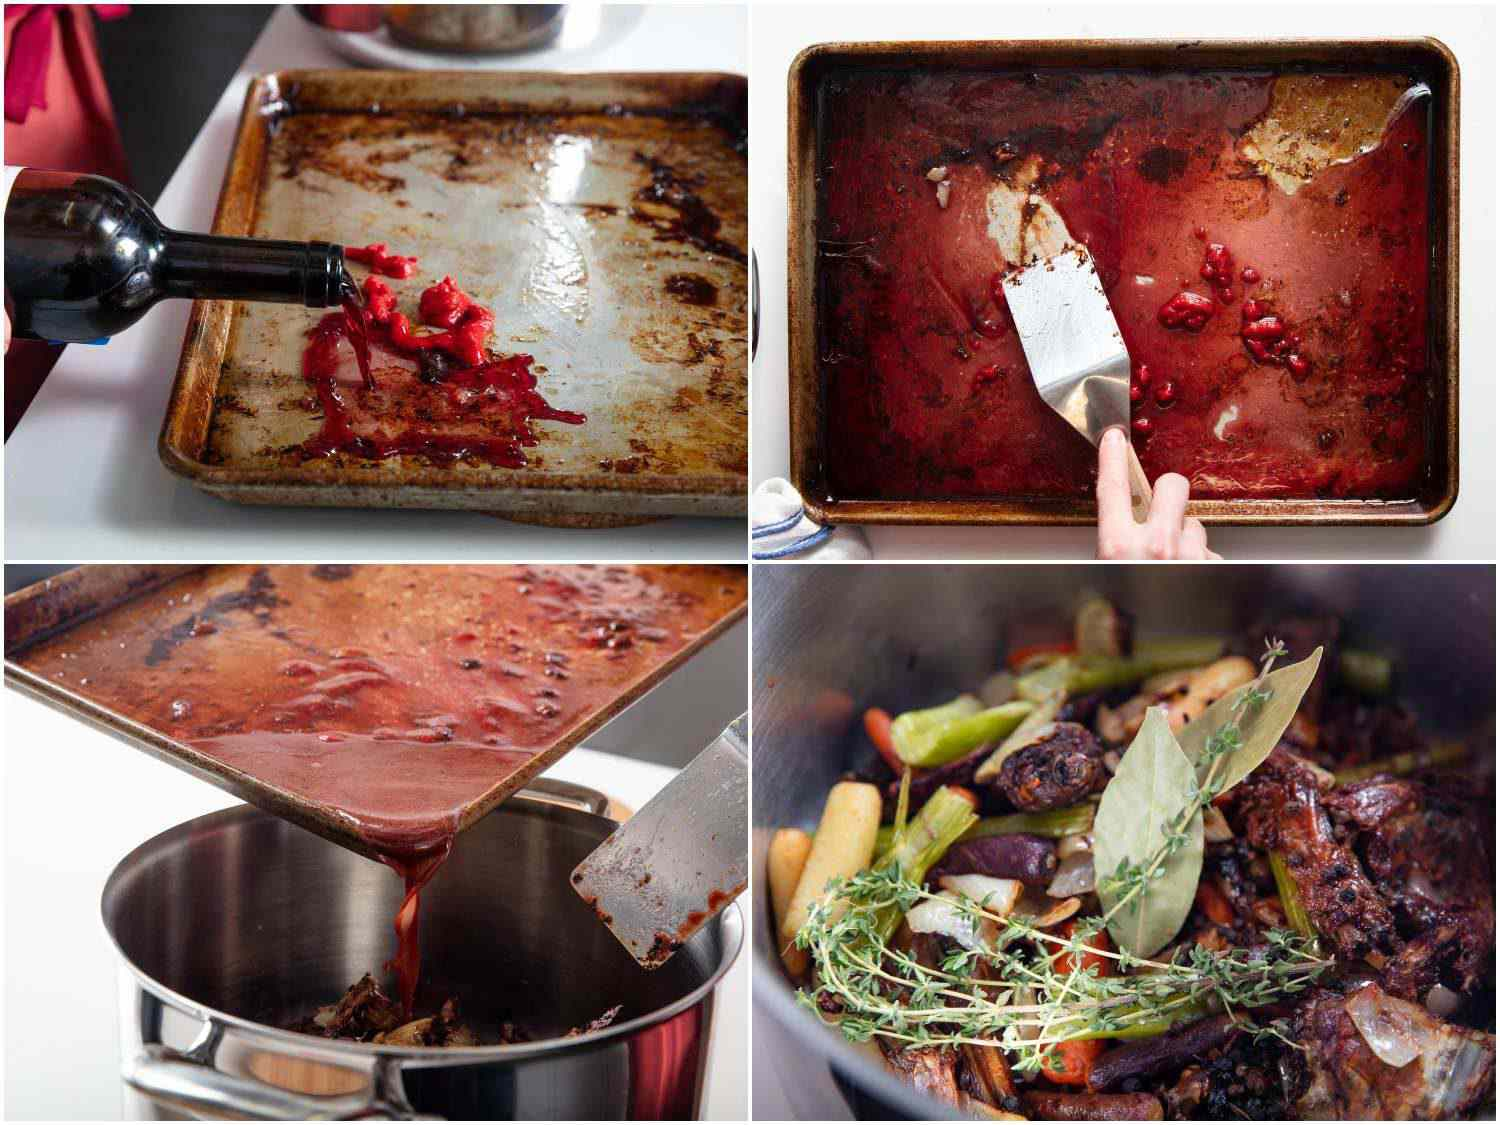 Photo collage of deglazing baking sheet used to roast duck bones and vegetables for duck stock with red wine and tomato paste.